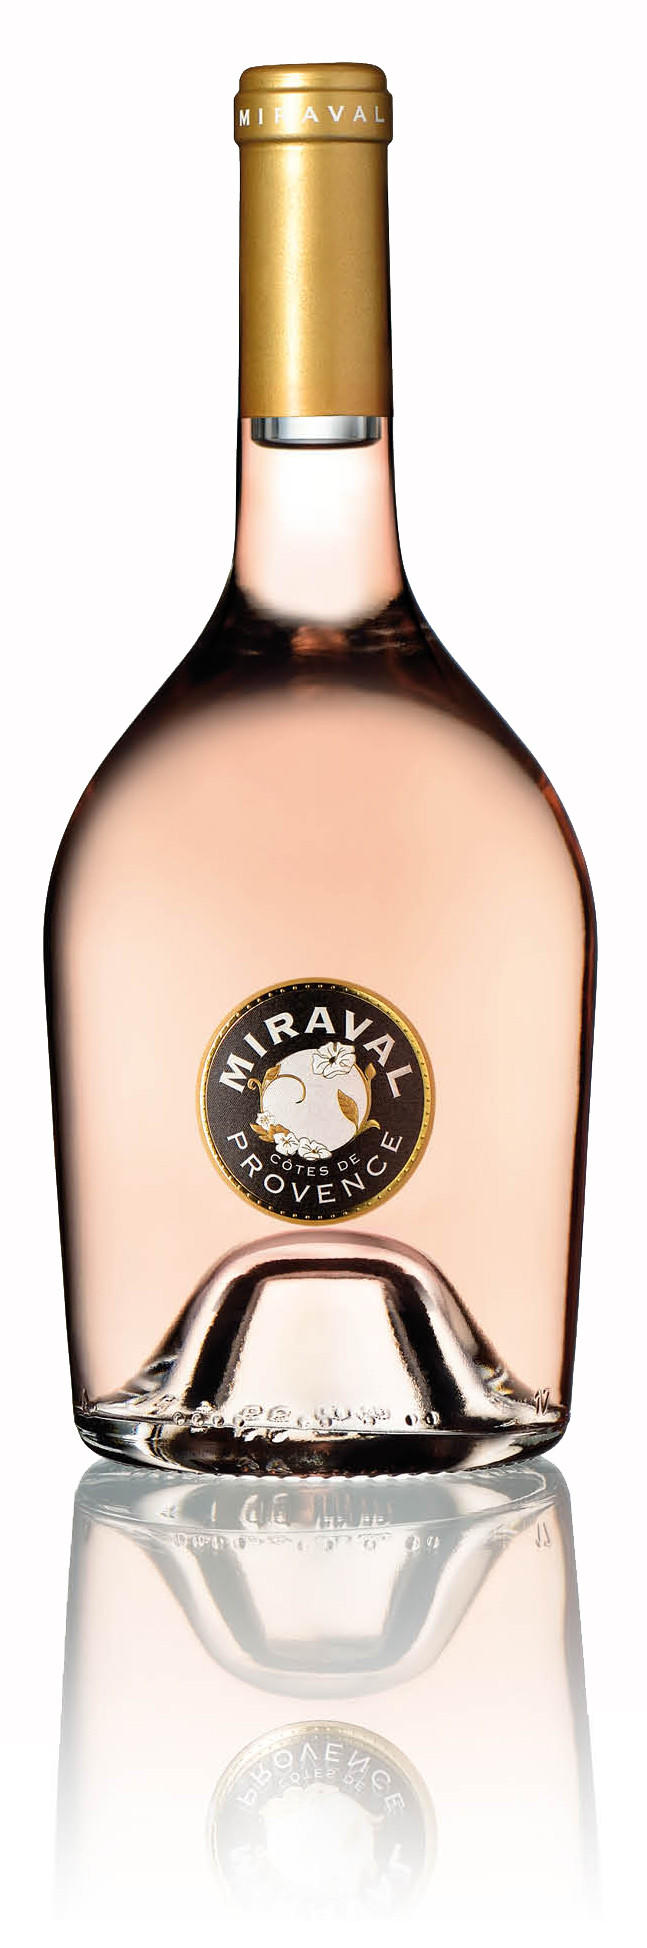 The second vintage of Angelina Jolie and Brad Pitt's Provence rose, Chateau Miraval, made in collaboration with the Perrin family of Chateau de Beaucastel, arriving soon.